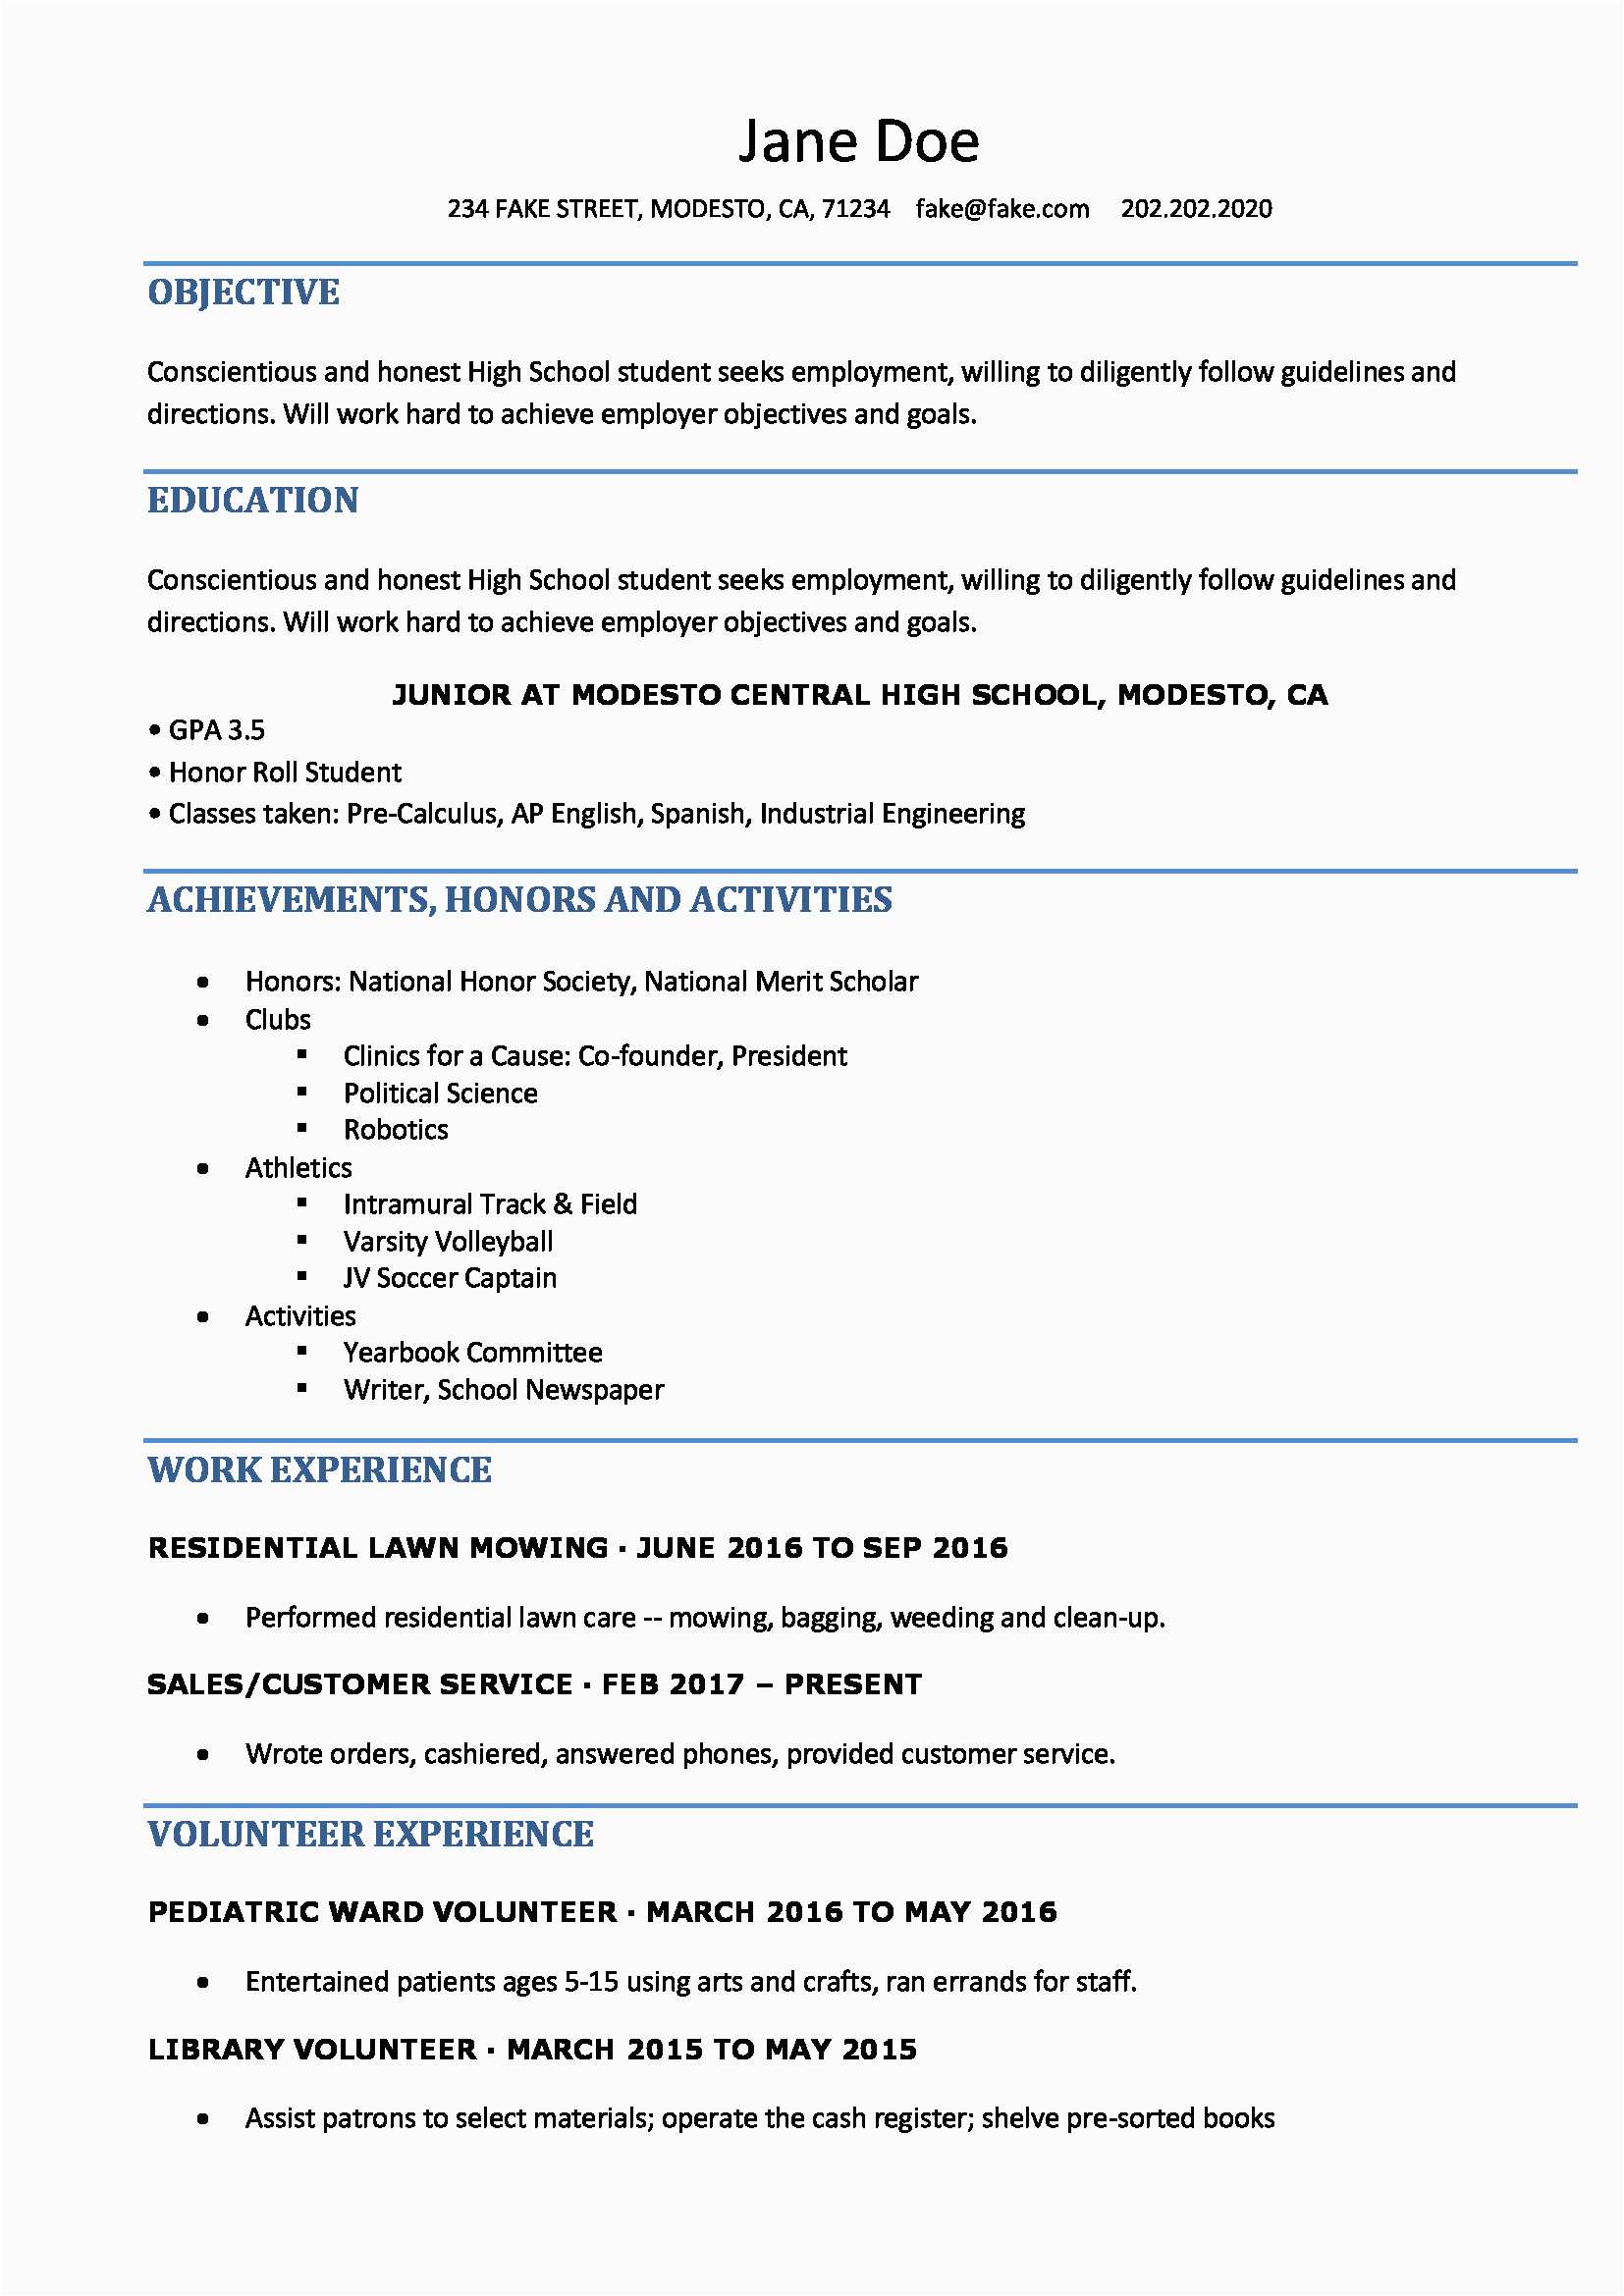 Free Resume Samples for Highschool Students High School Resume Resume Templates for High School